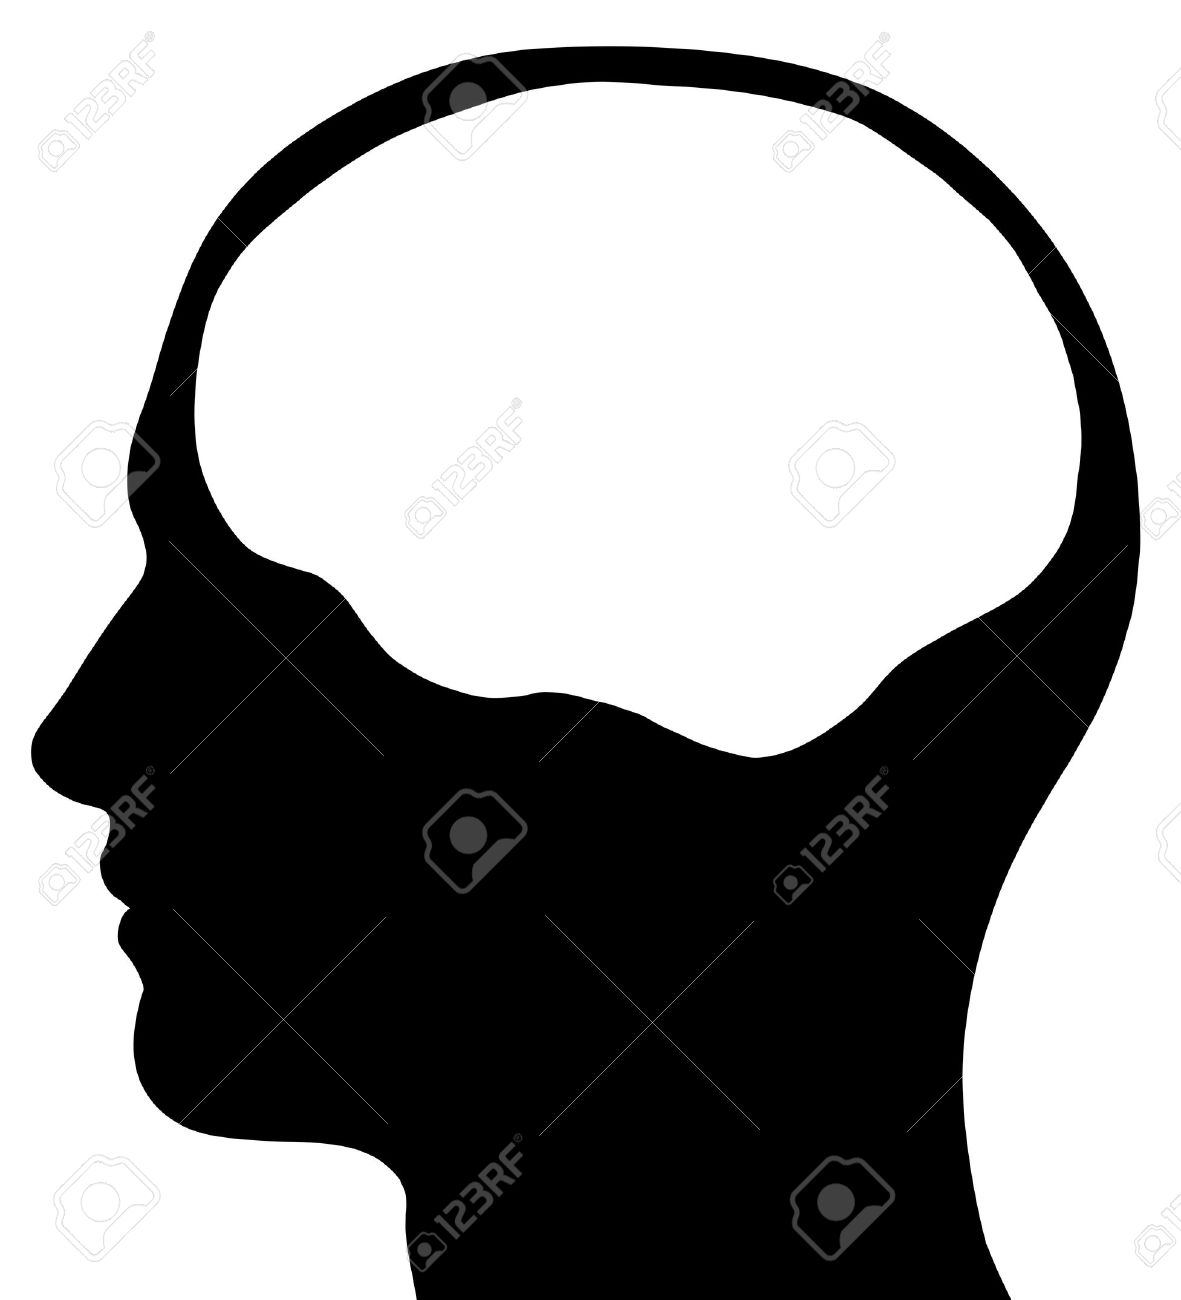 a graphic of a male head silhouette with a white brain area isolated on a